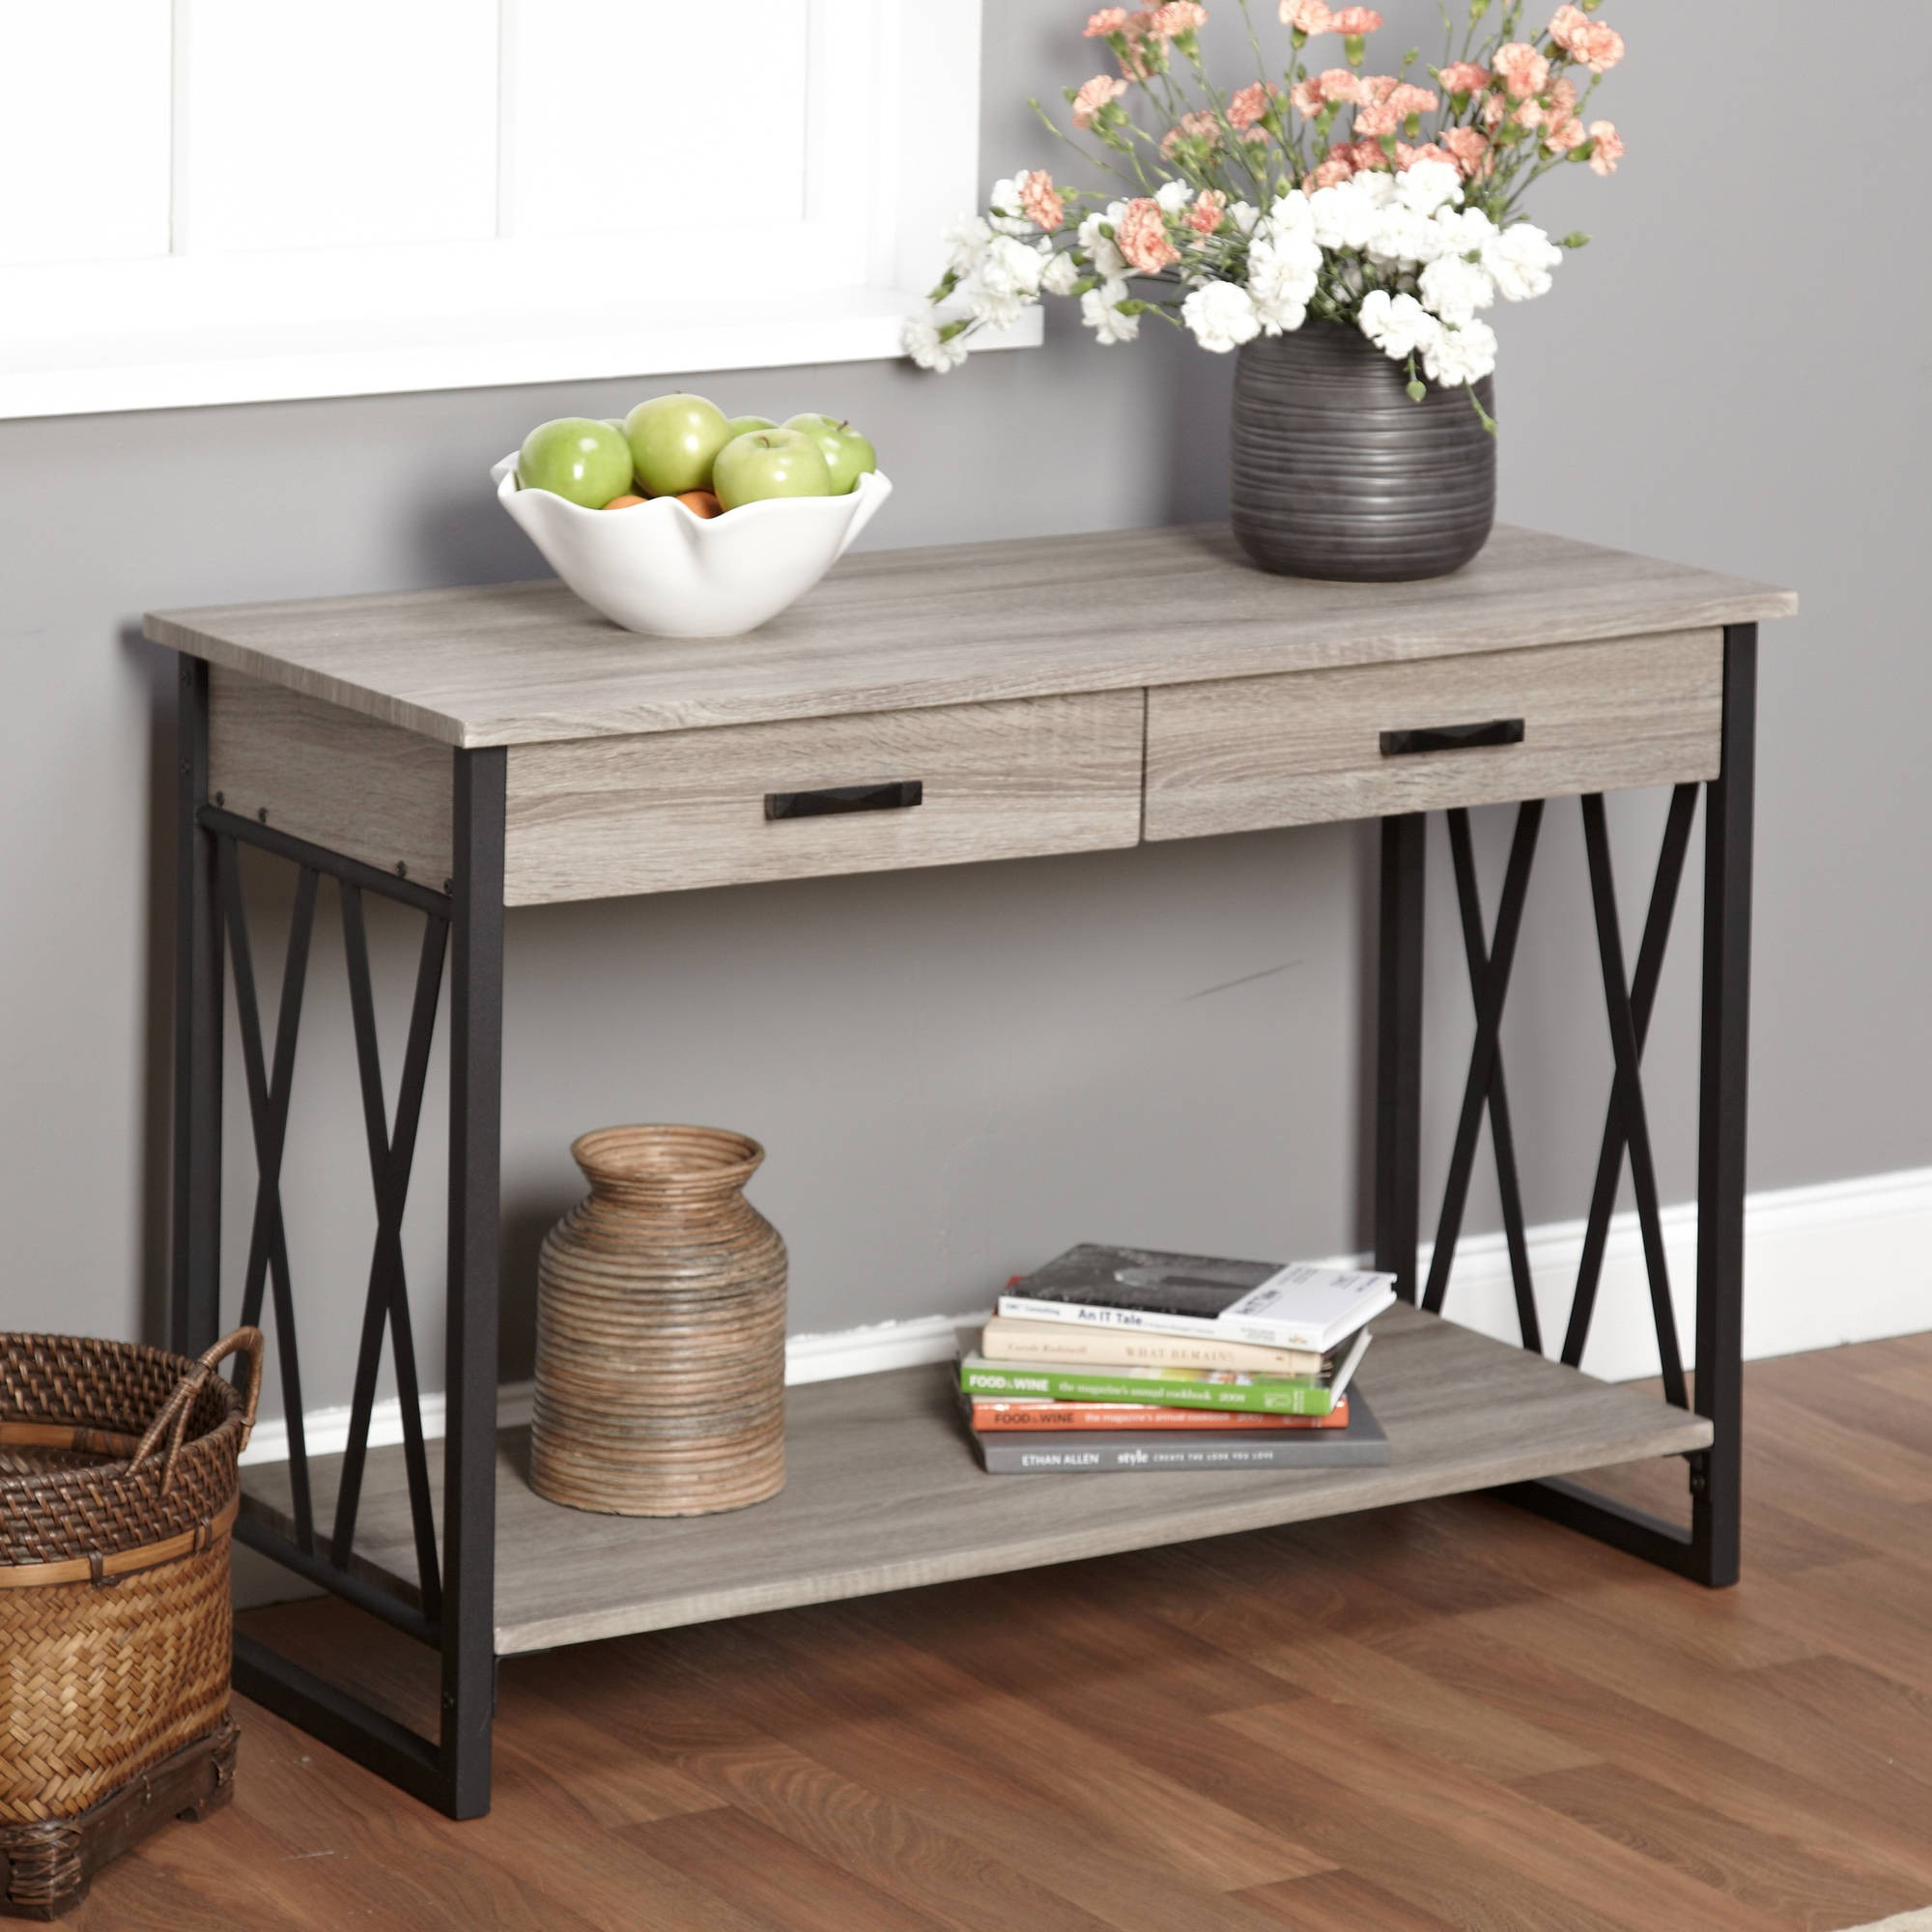 Walmart sofa Table Inspirational Console Tables Walmart sofa Tables Awesome Contemporary Design Online